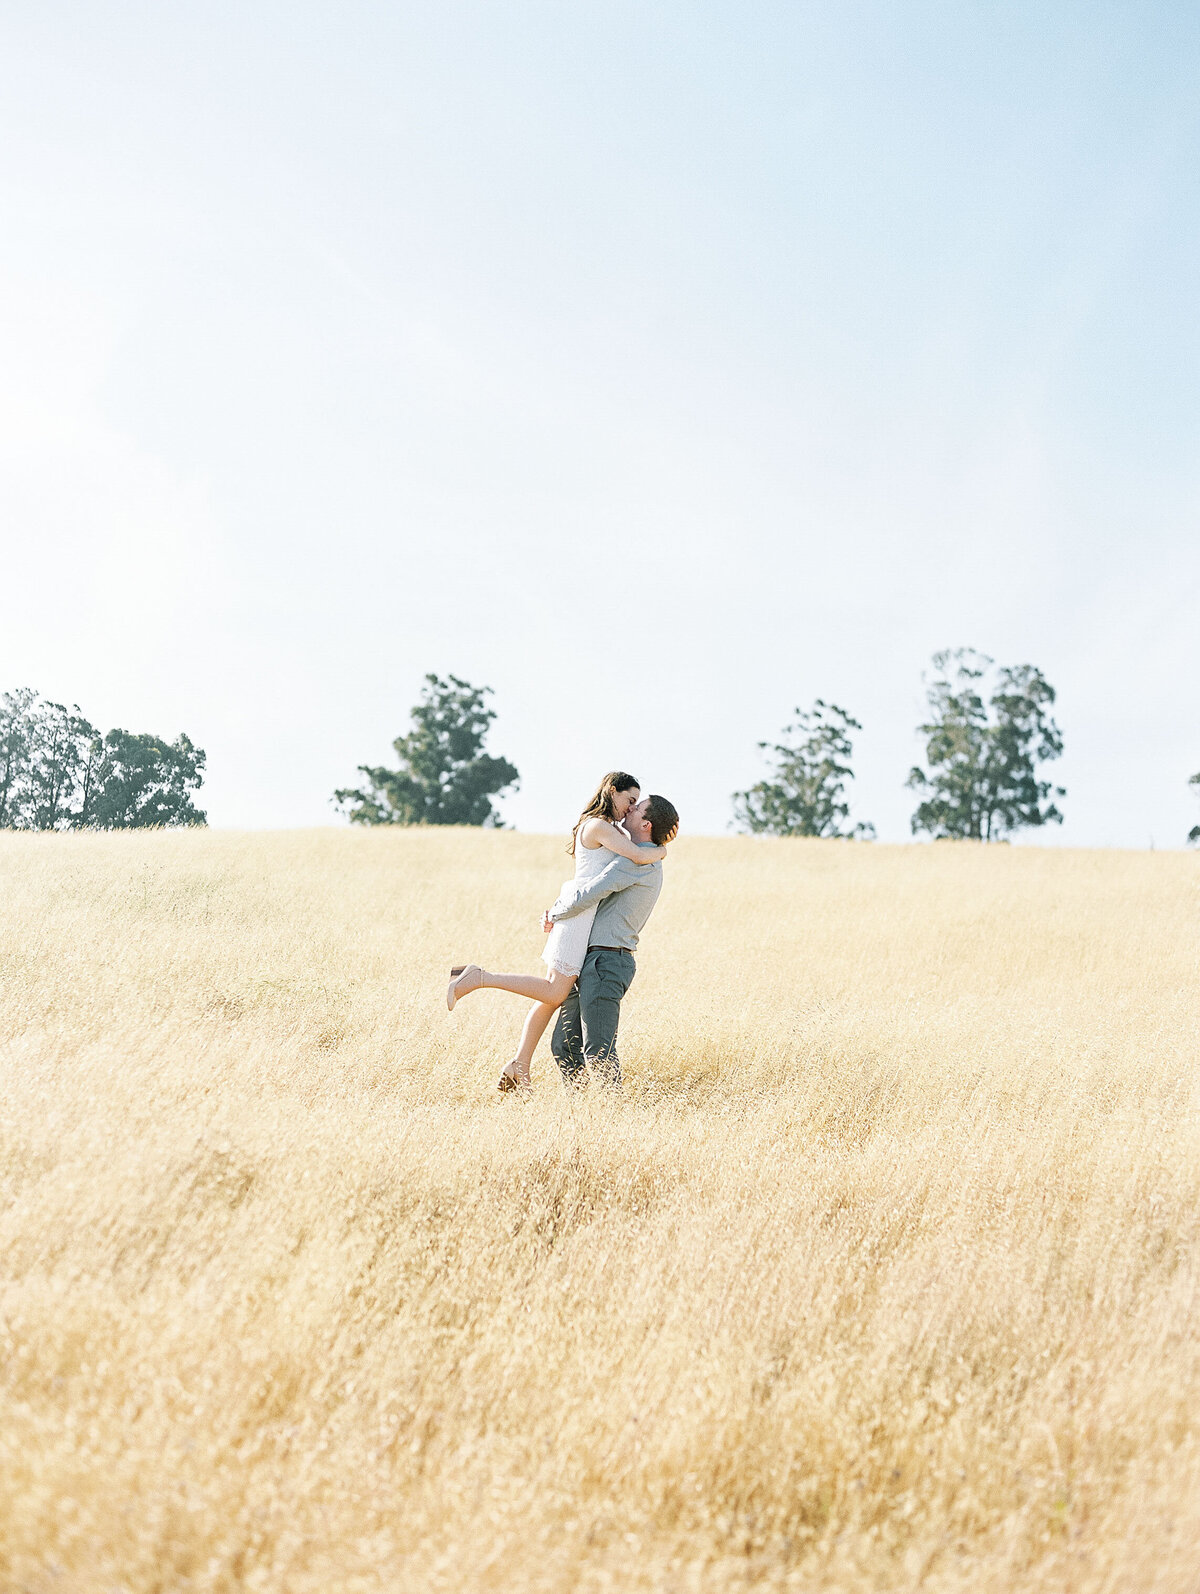 Filoli_Gardens_California_Engagement_Photo-14